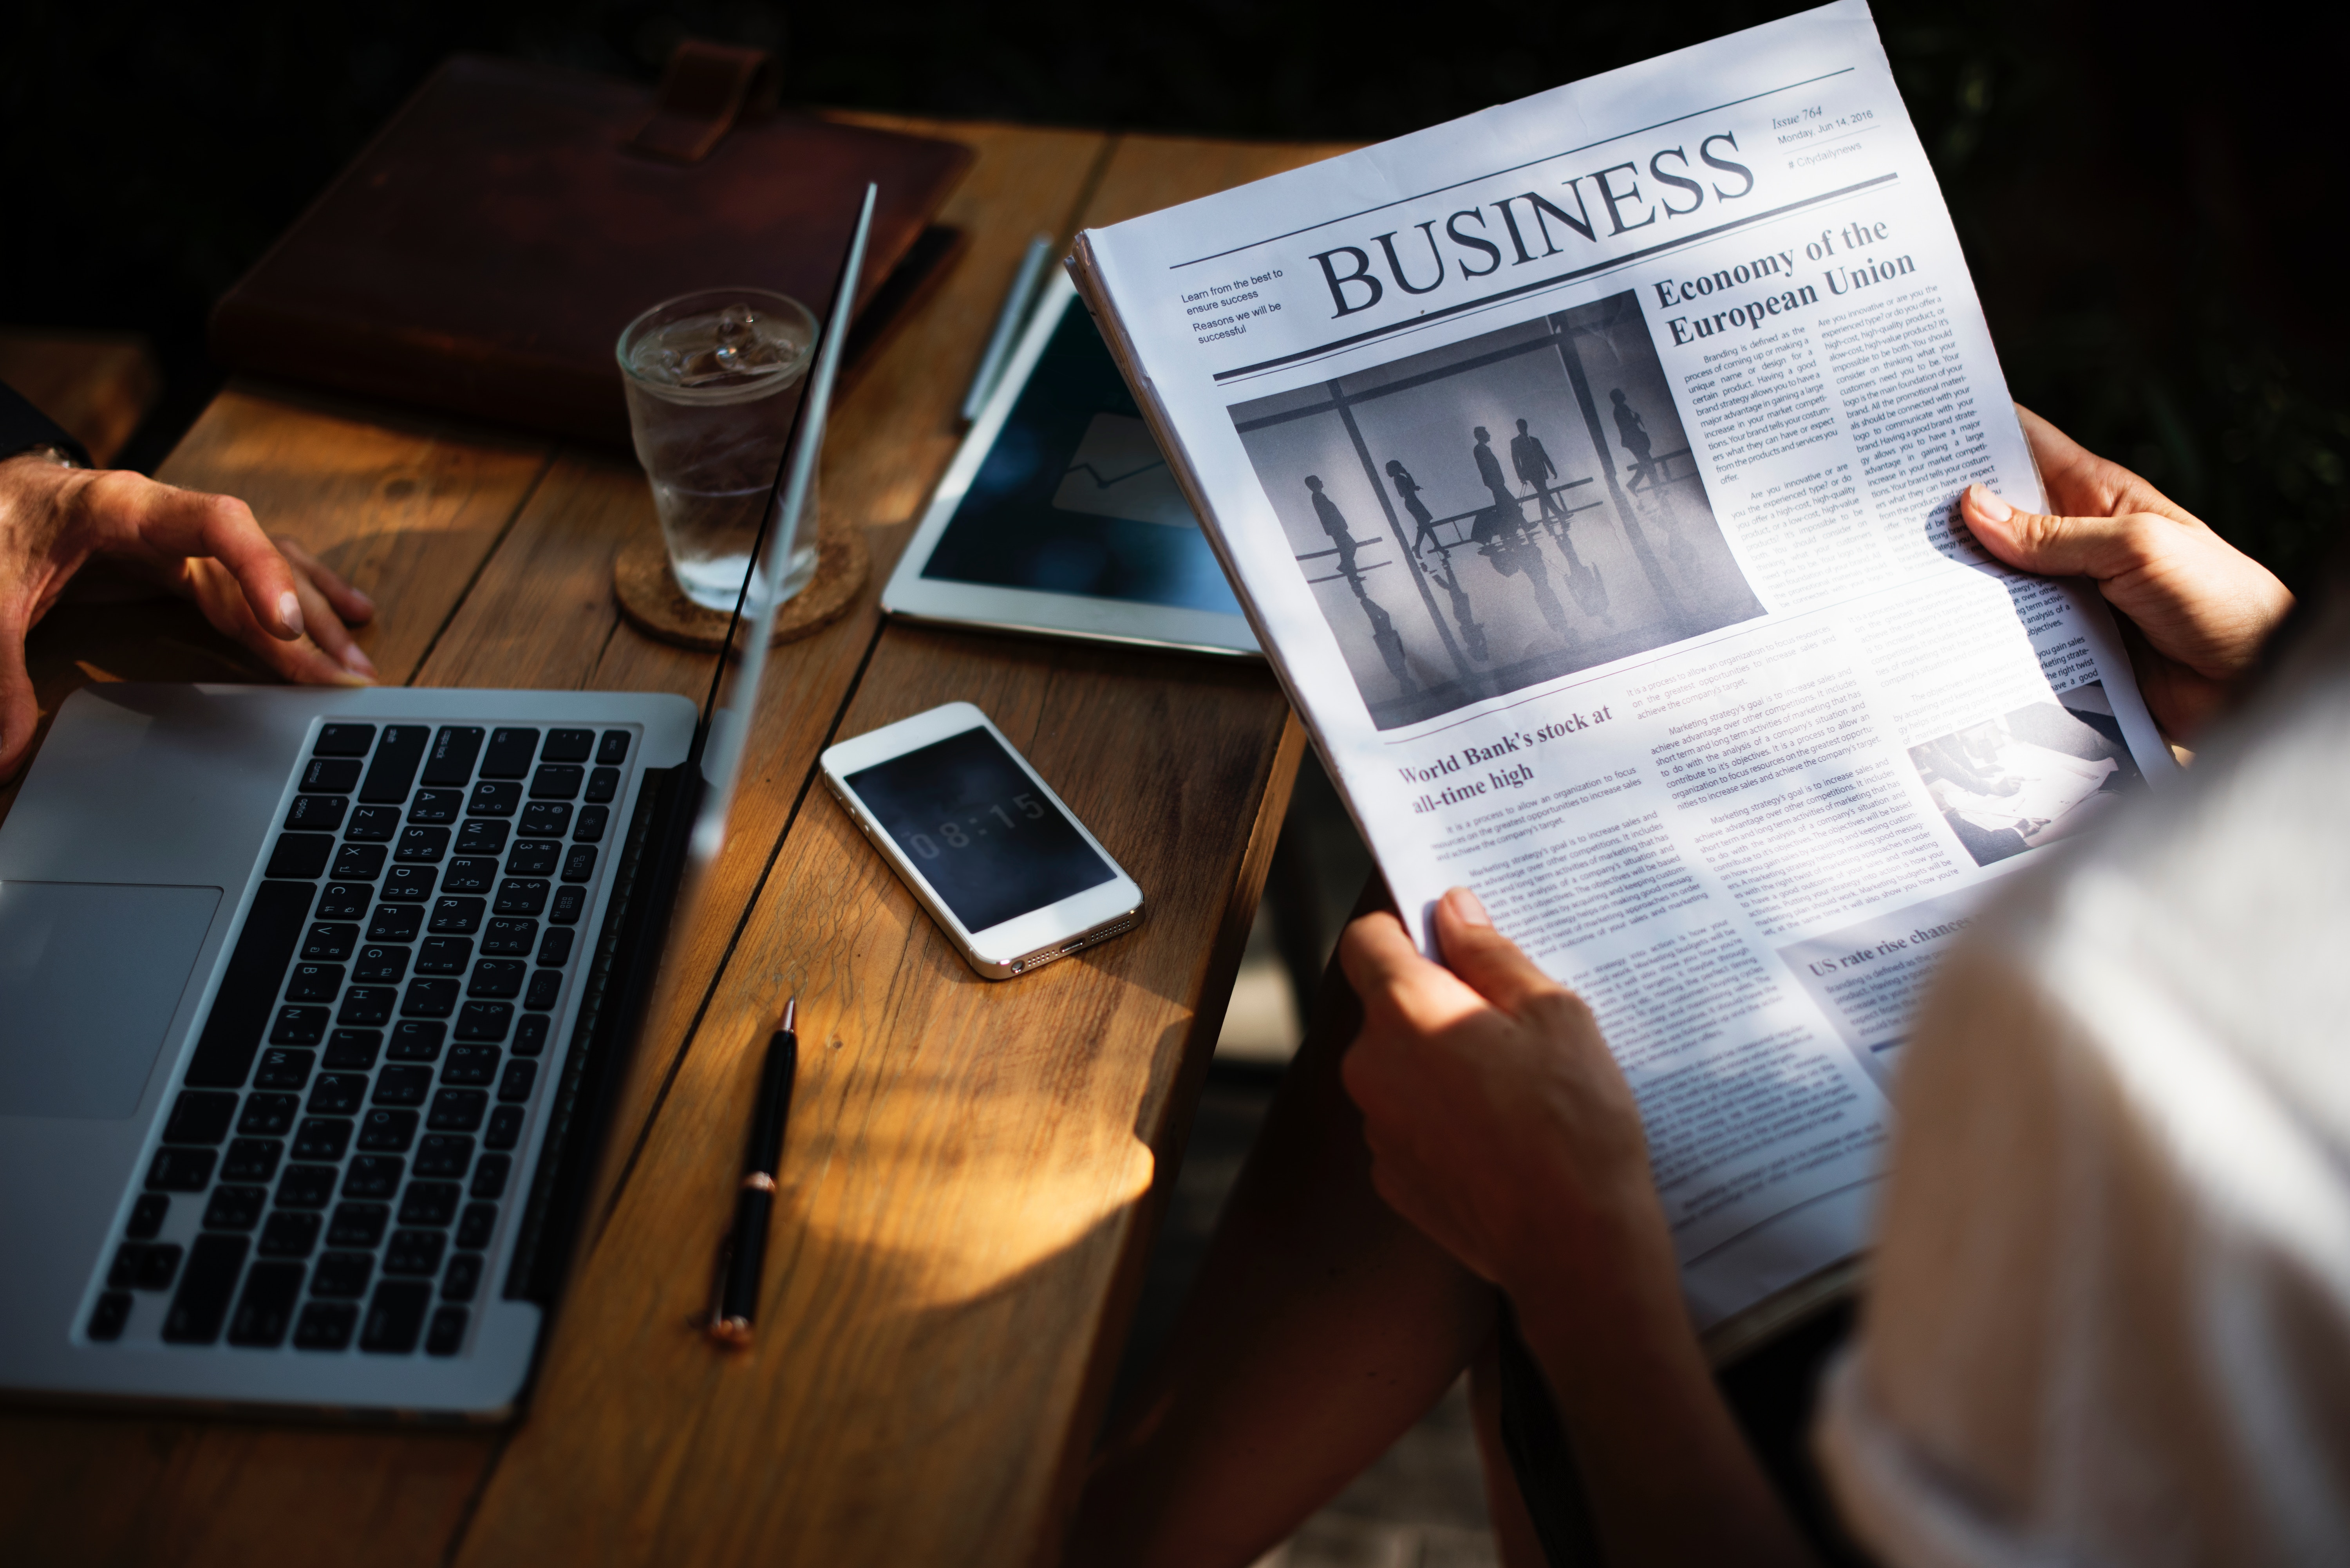 Image of the business section in the newspaper